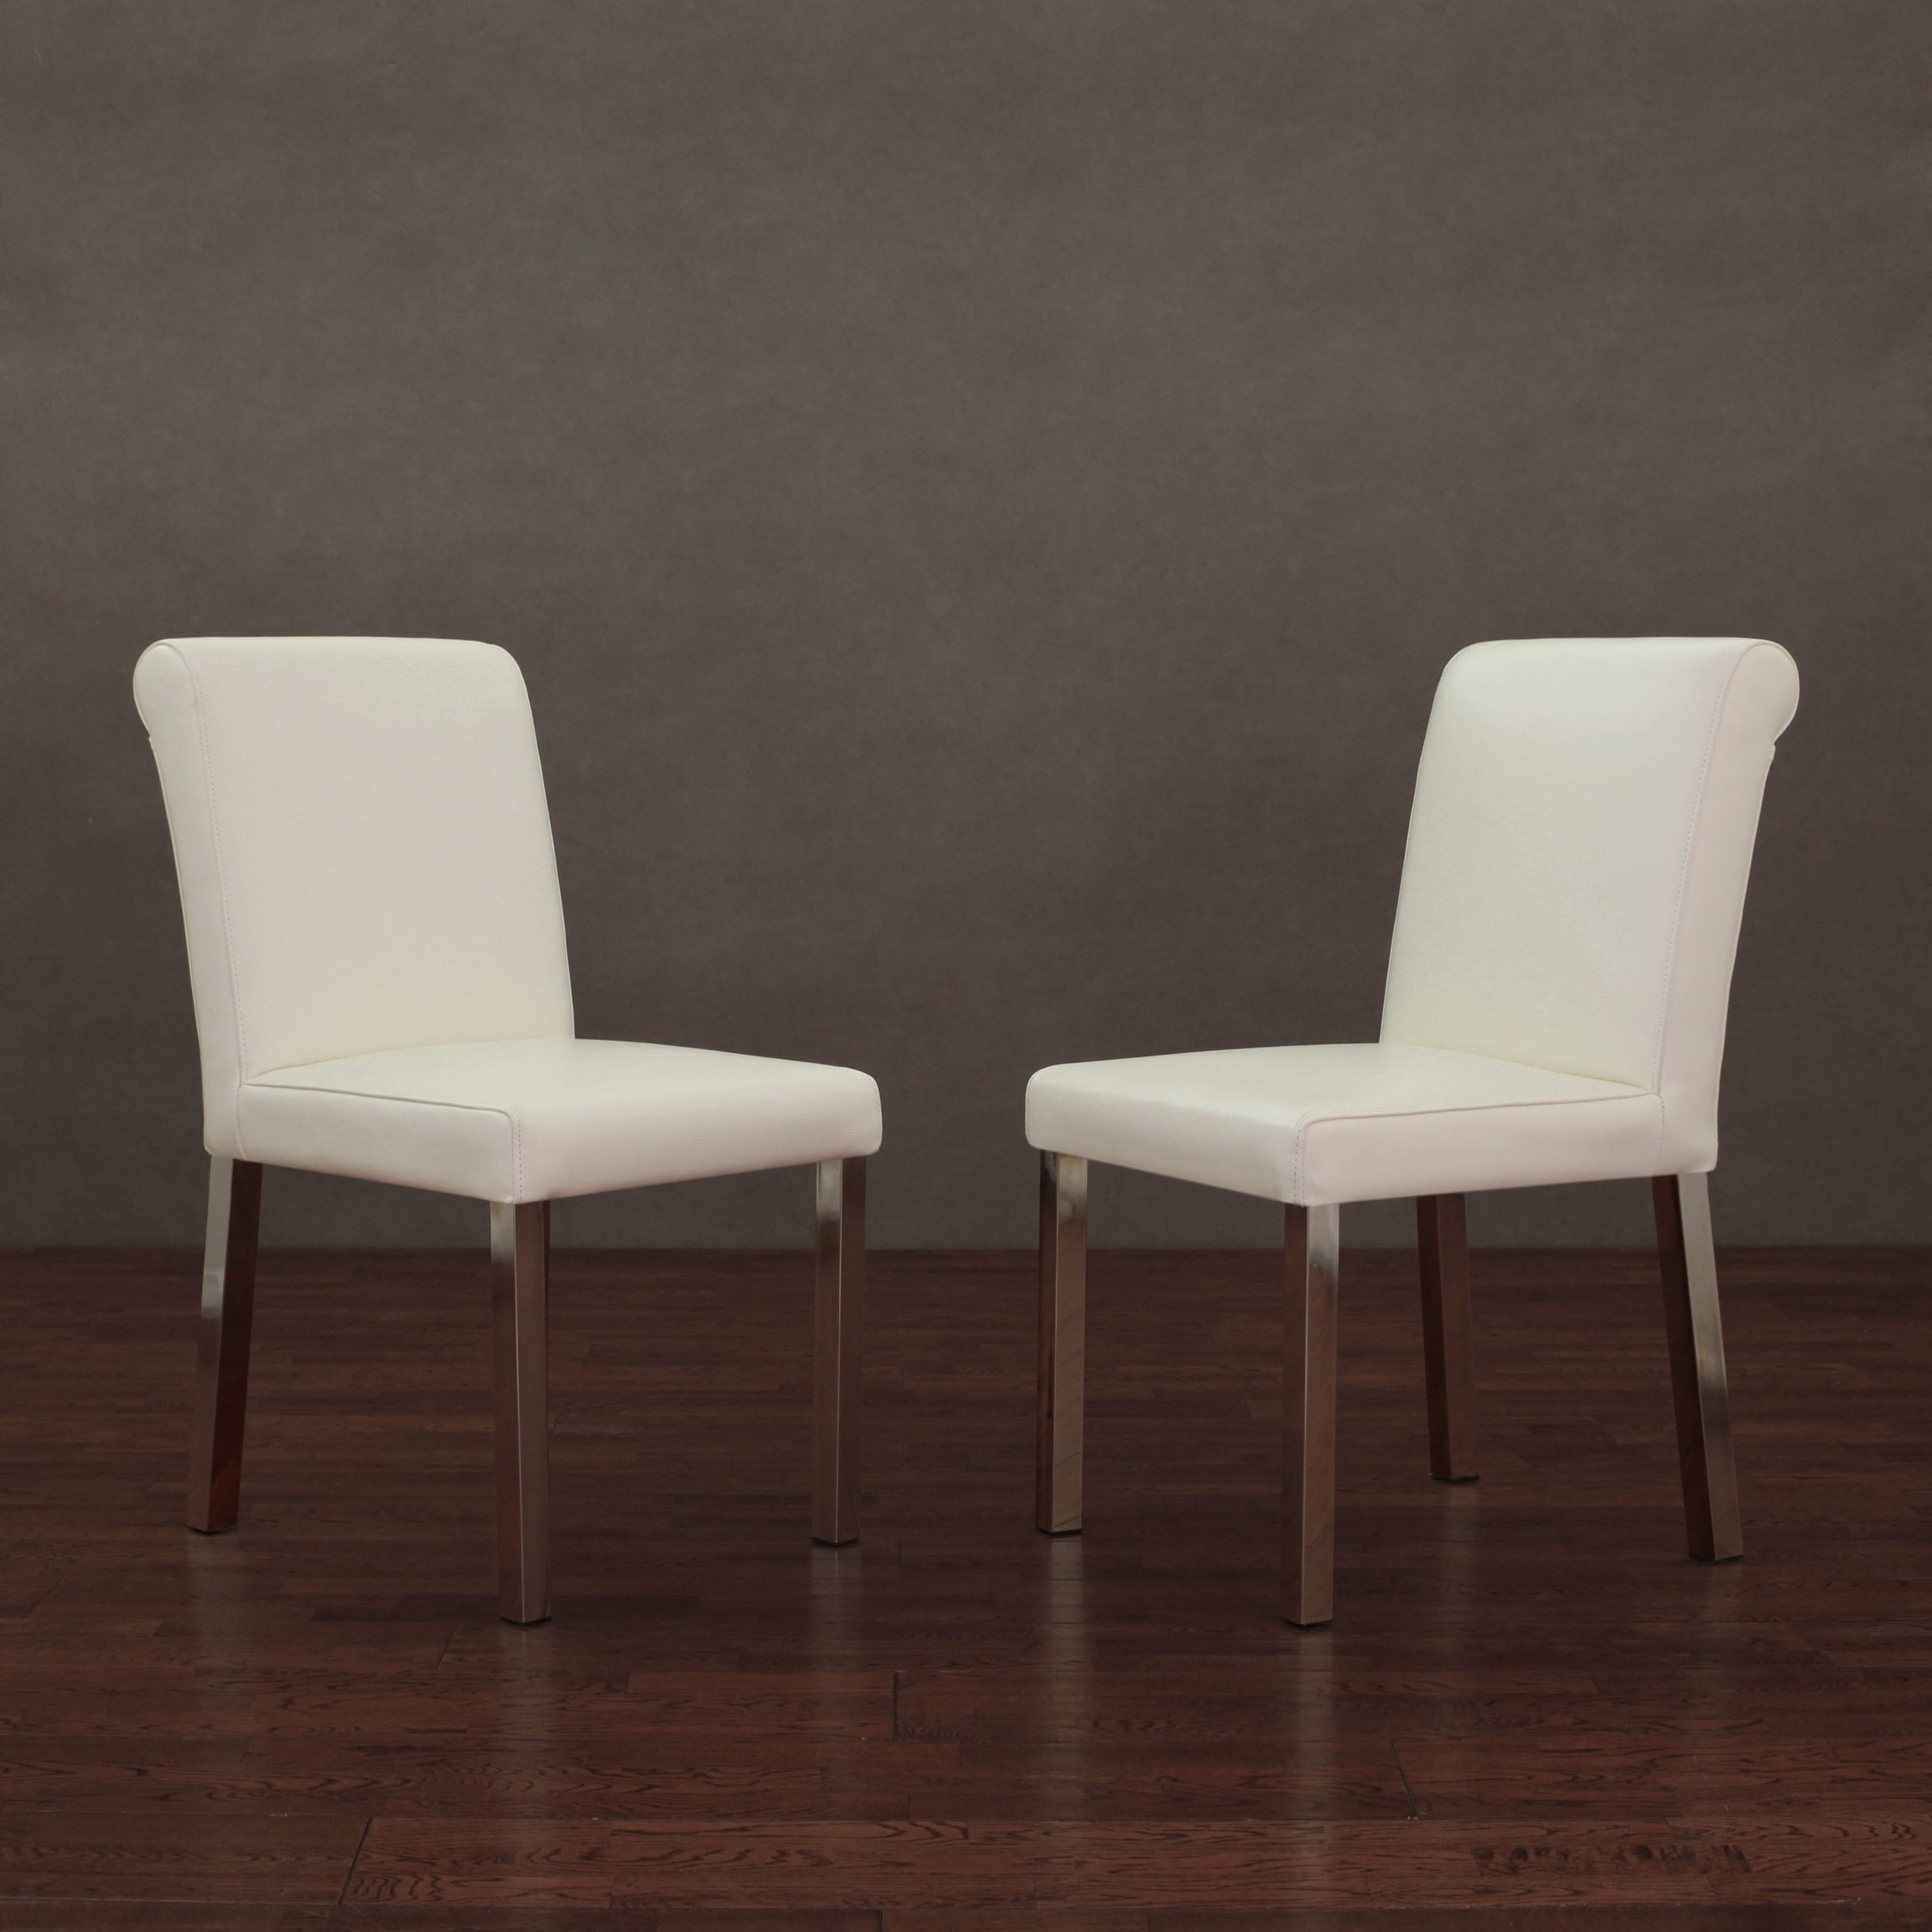 Dining Chairs Deals: Cosmopolitan Stainless Steel Modern White Leather Dining